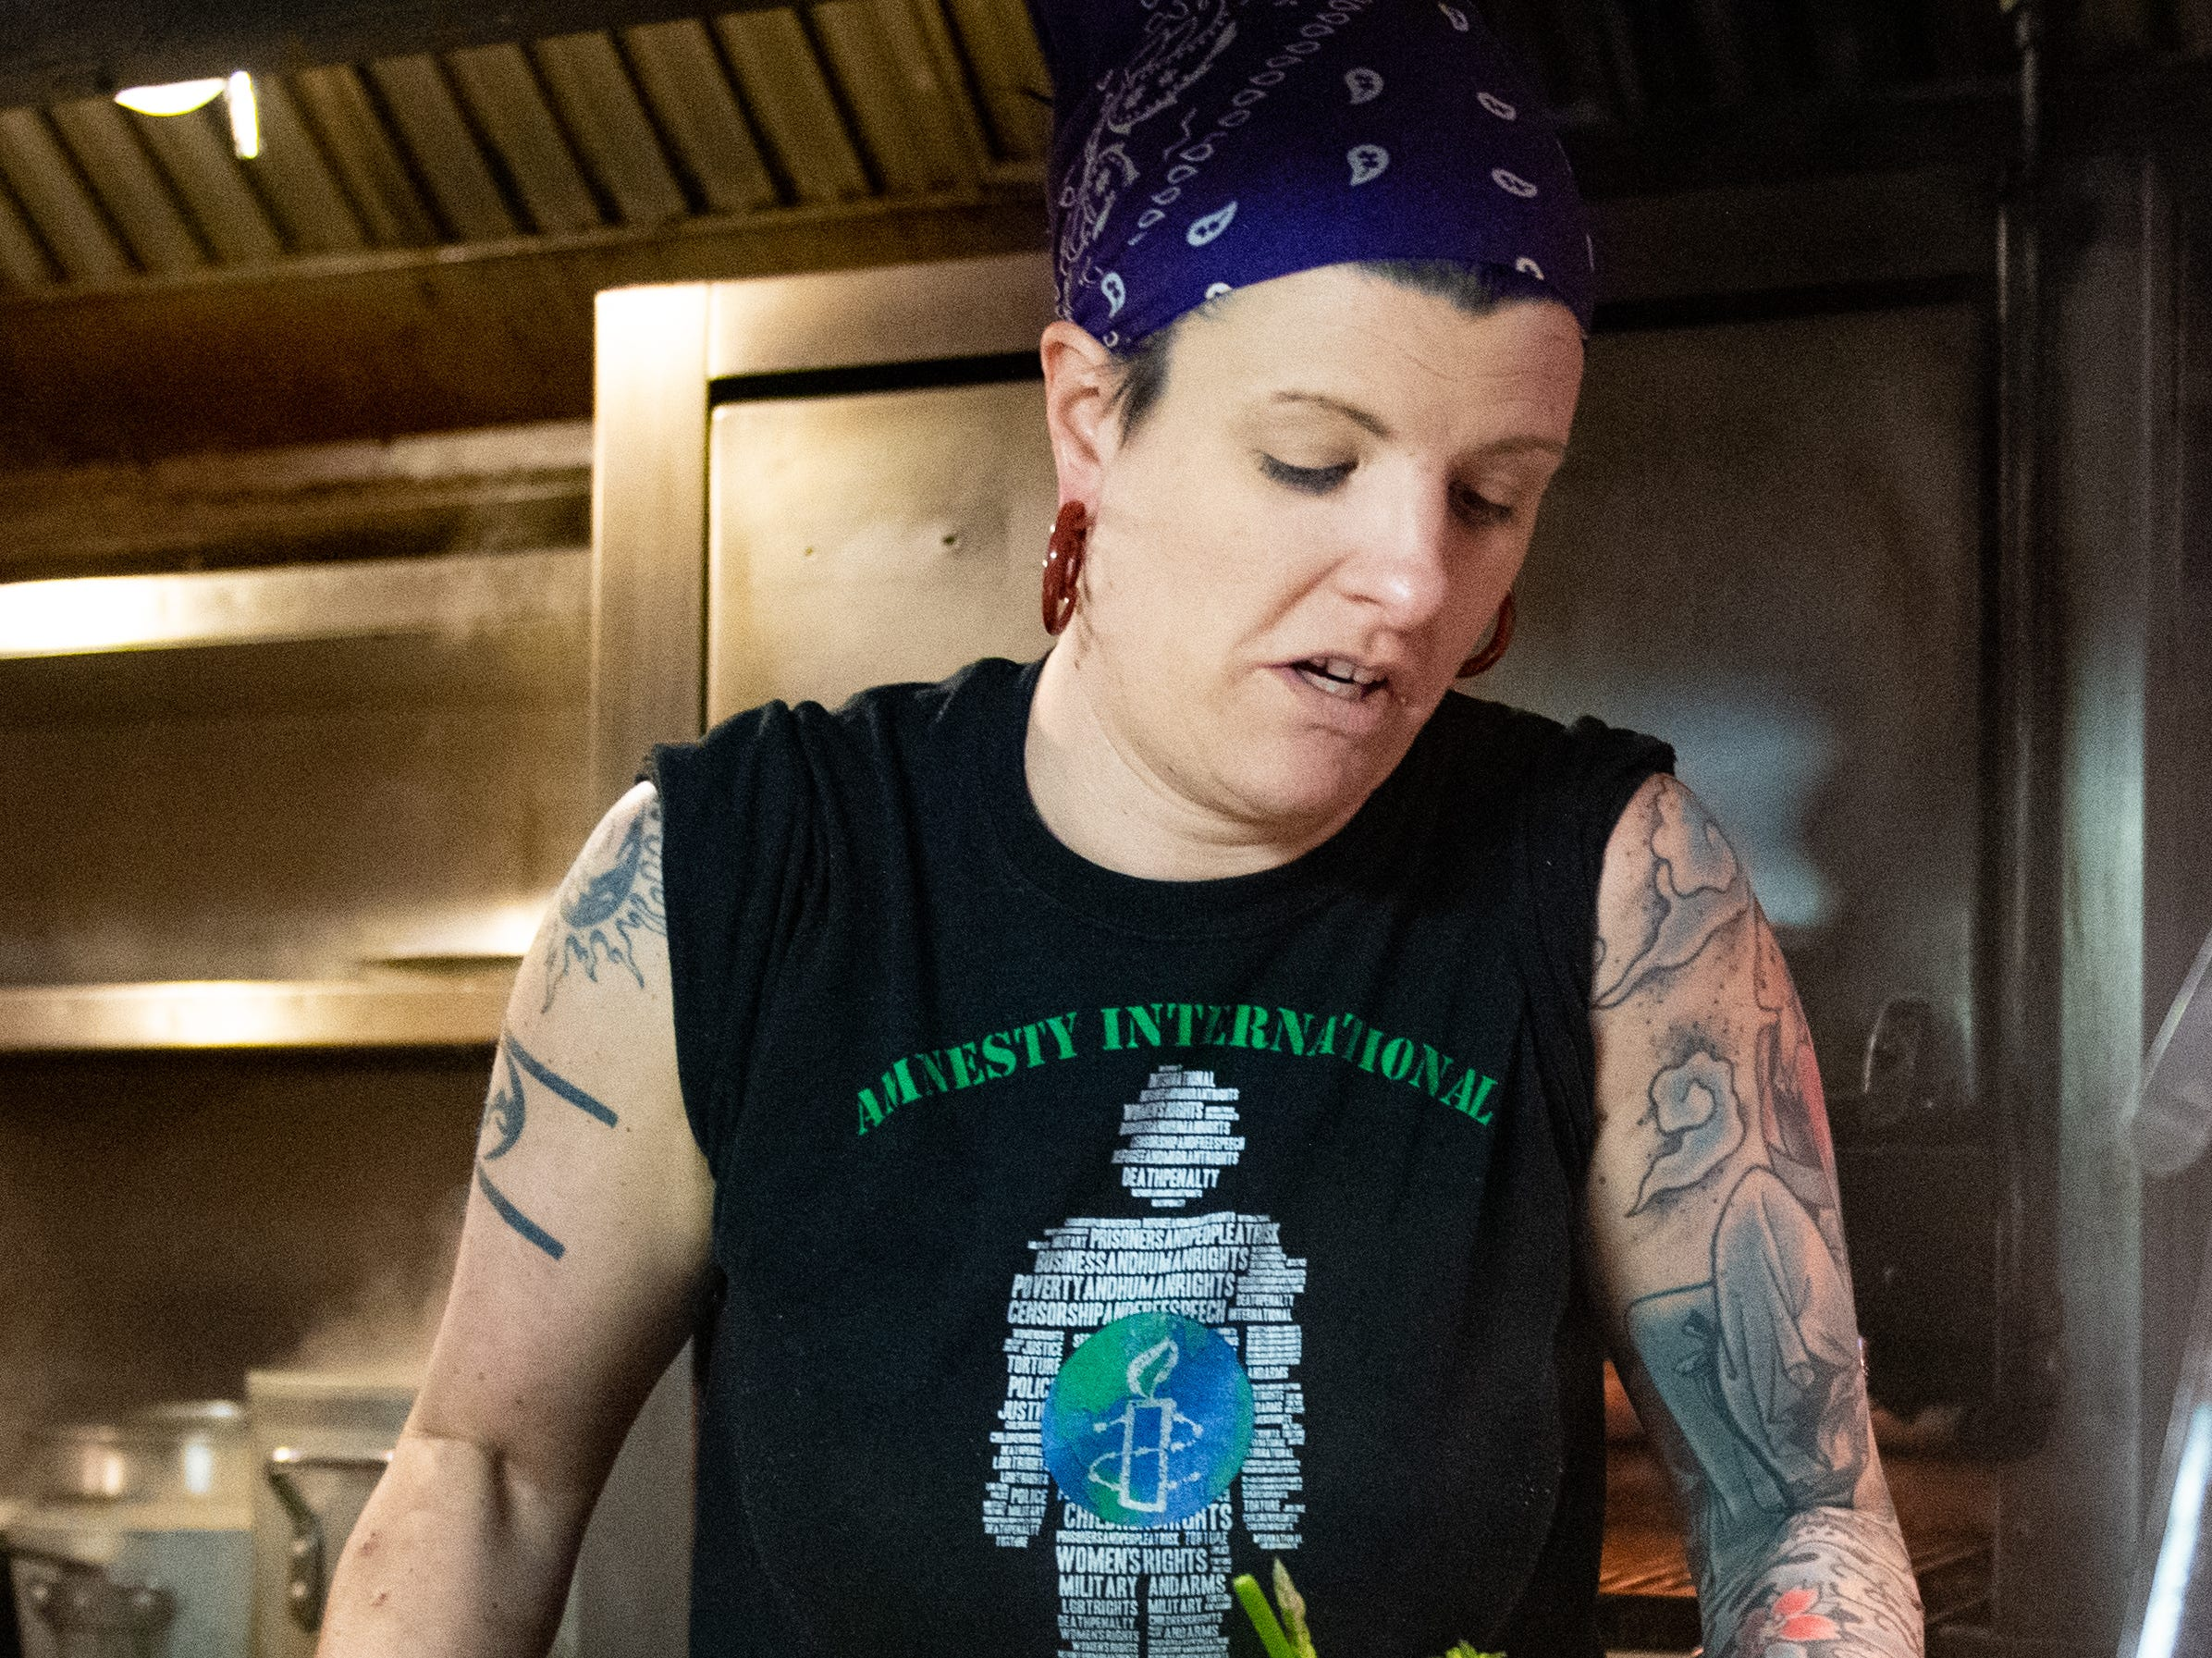 Executive Chef Corinna Killian carries a cutting board full of asparagus to another part of the kitchen at Bube's Brewery, February 22, 2019.